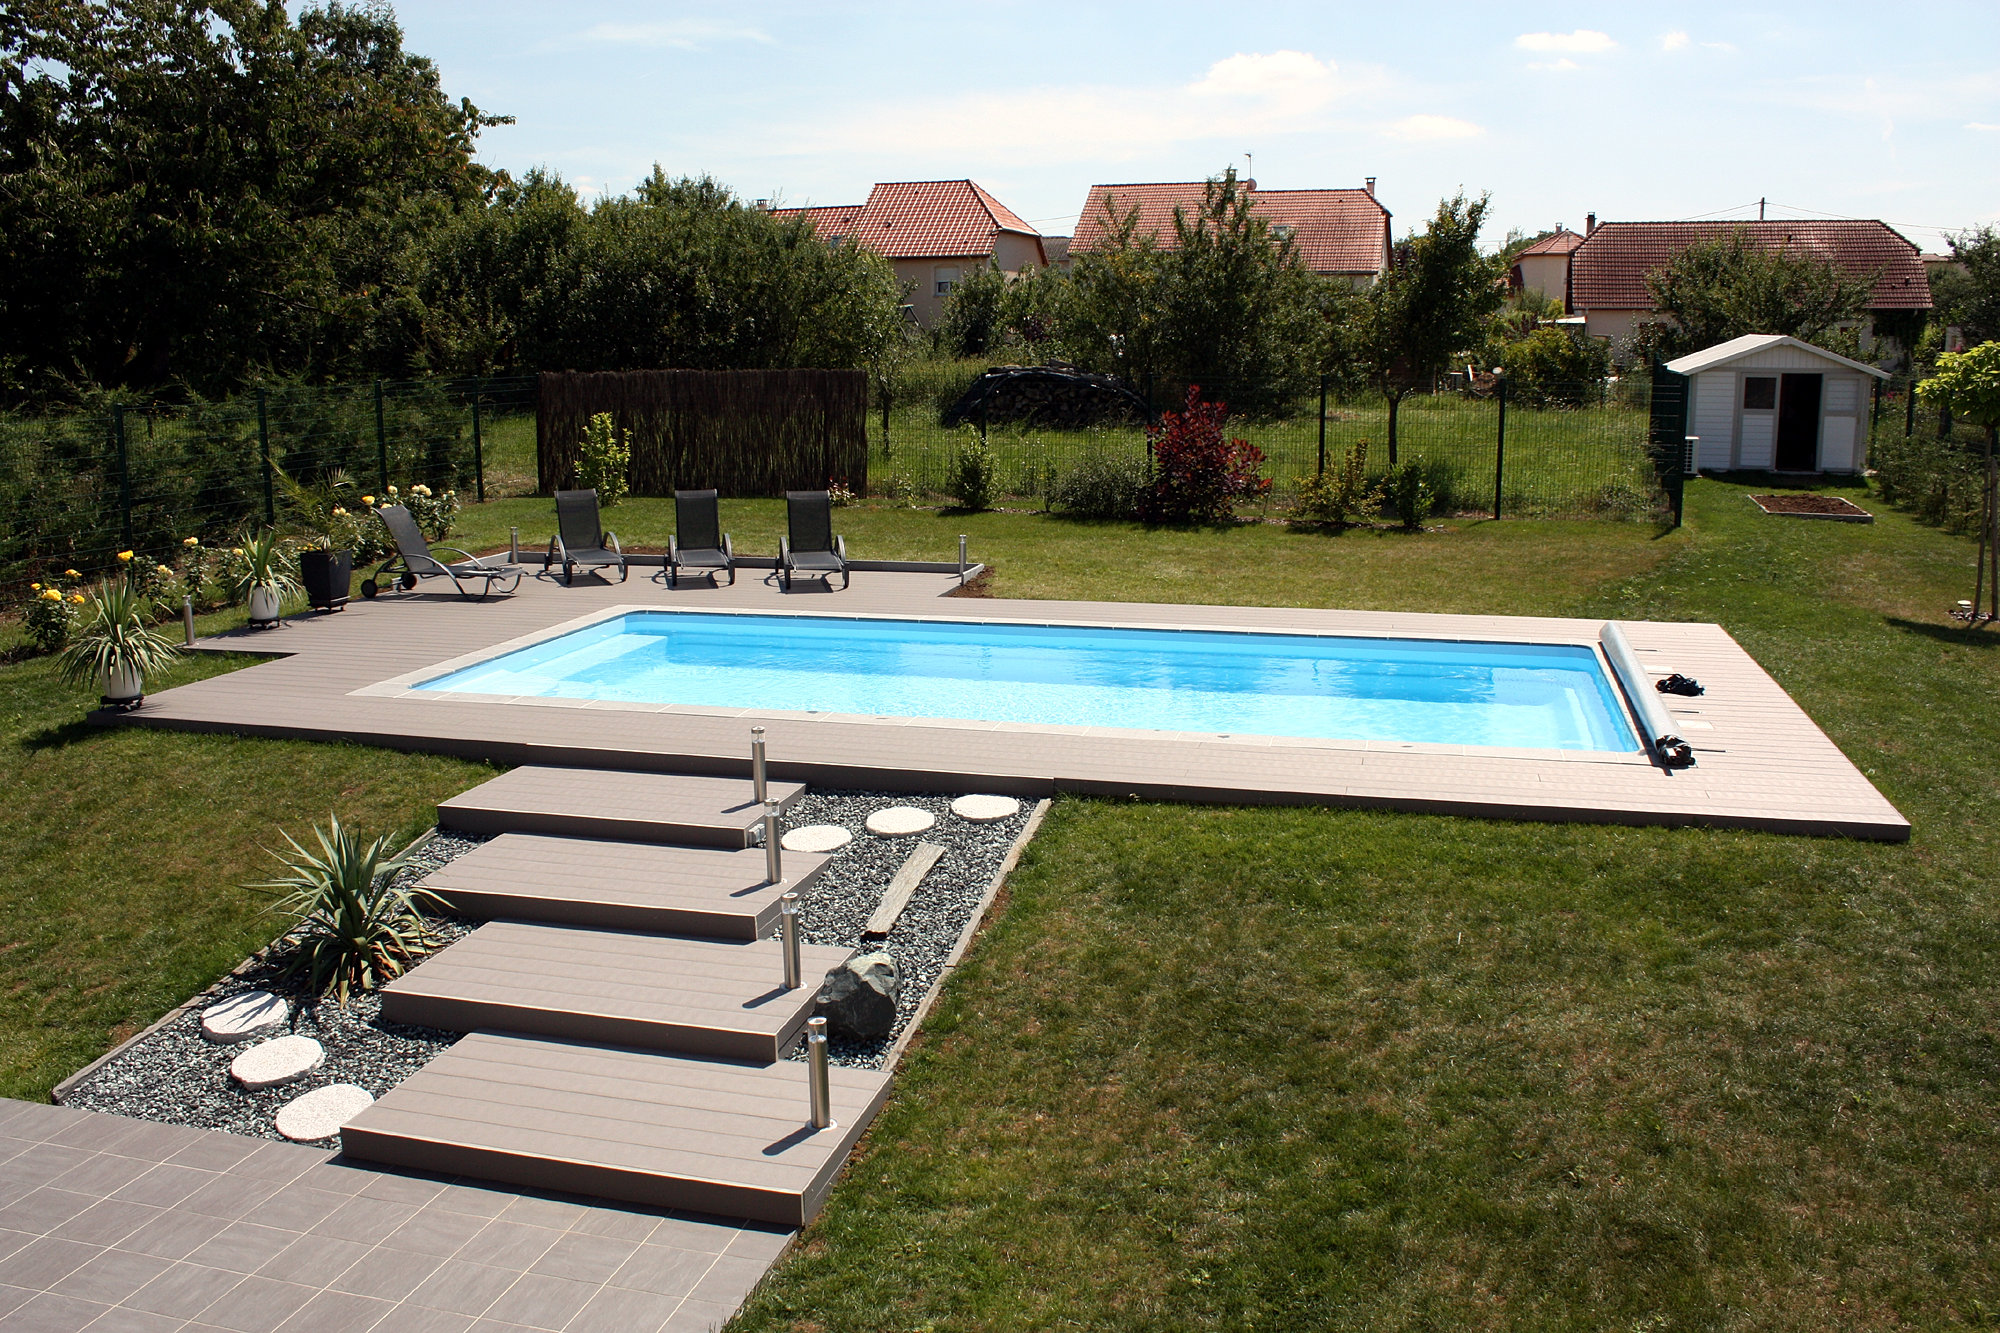 Corr ze concepteur r alisateur piscines saint priest de for Piscine saint priest